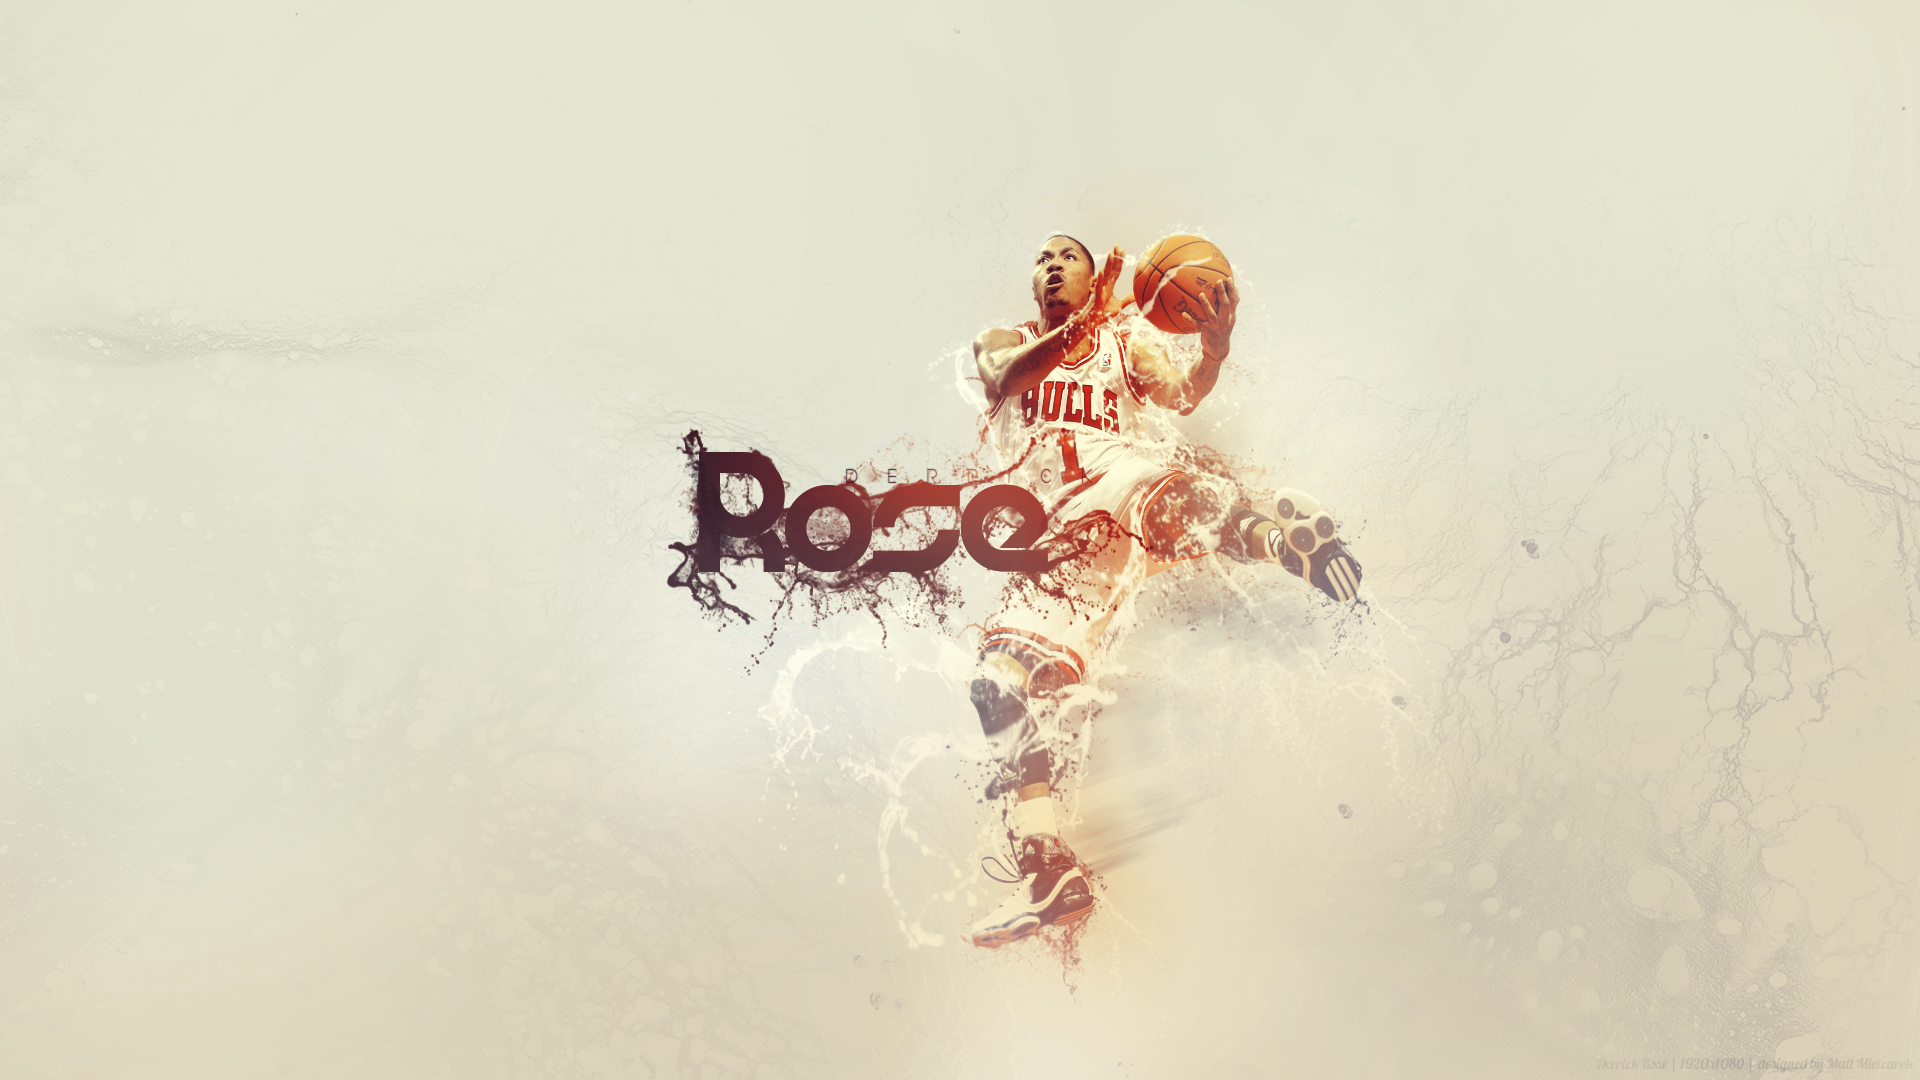 Chicago Bulls Desktop Wallpapers for HD Widescreen and Mobile 1920x1080